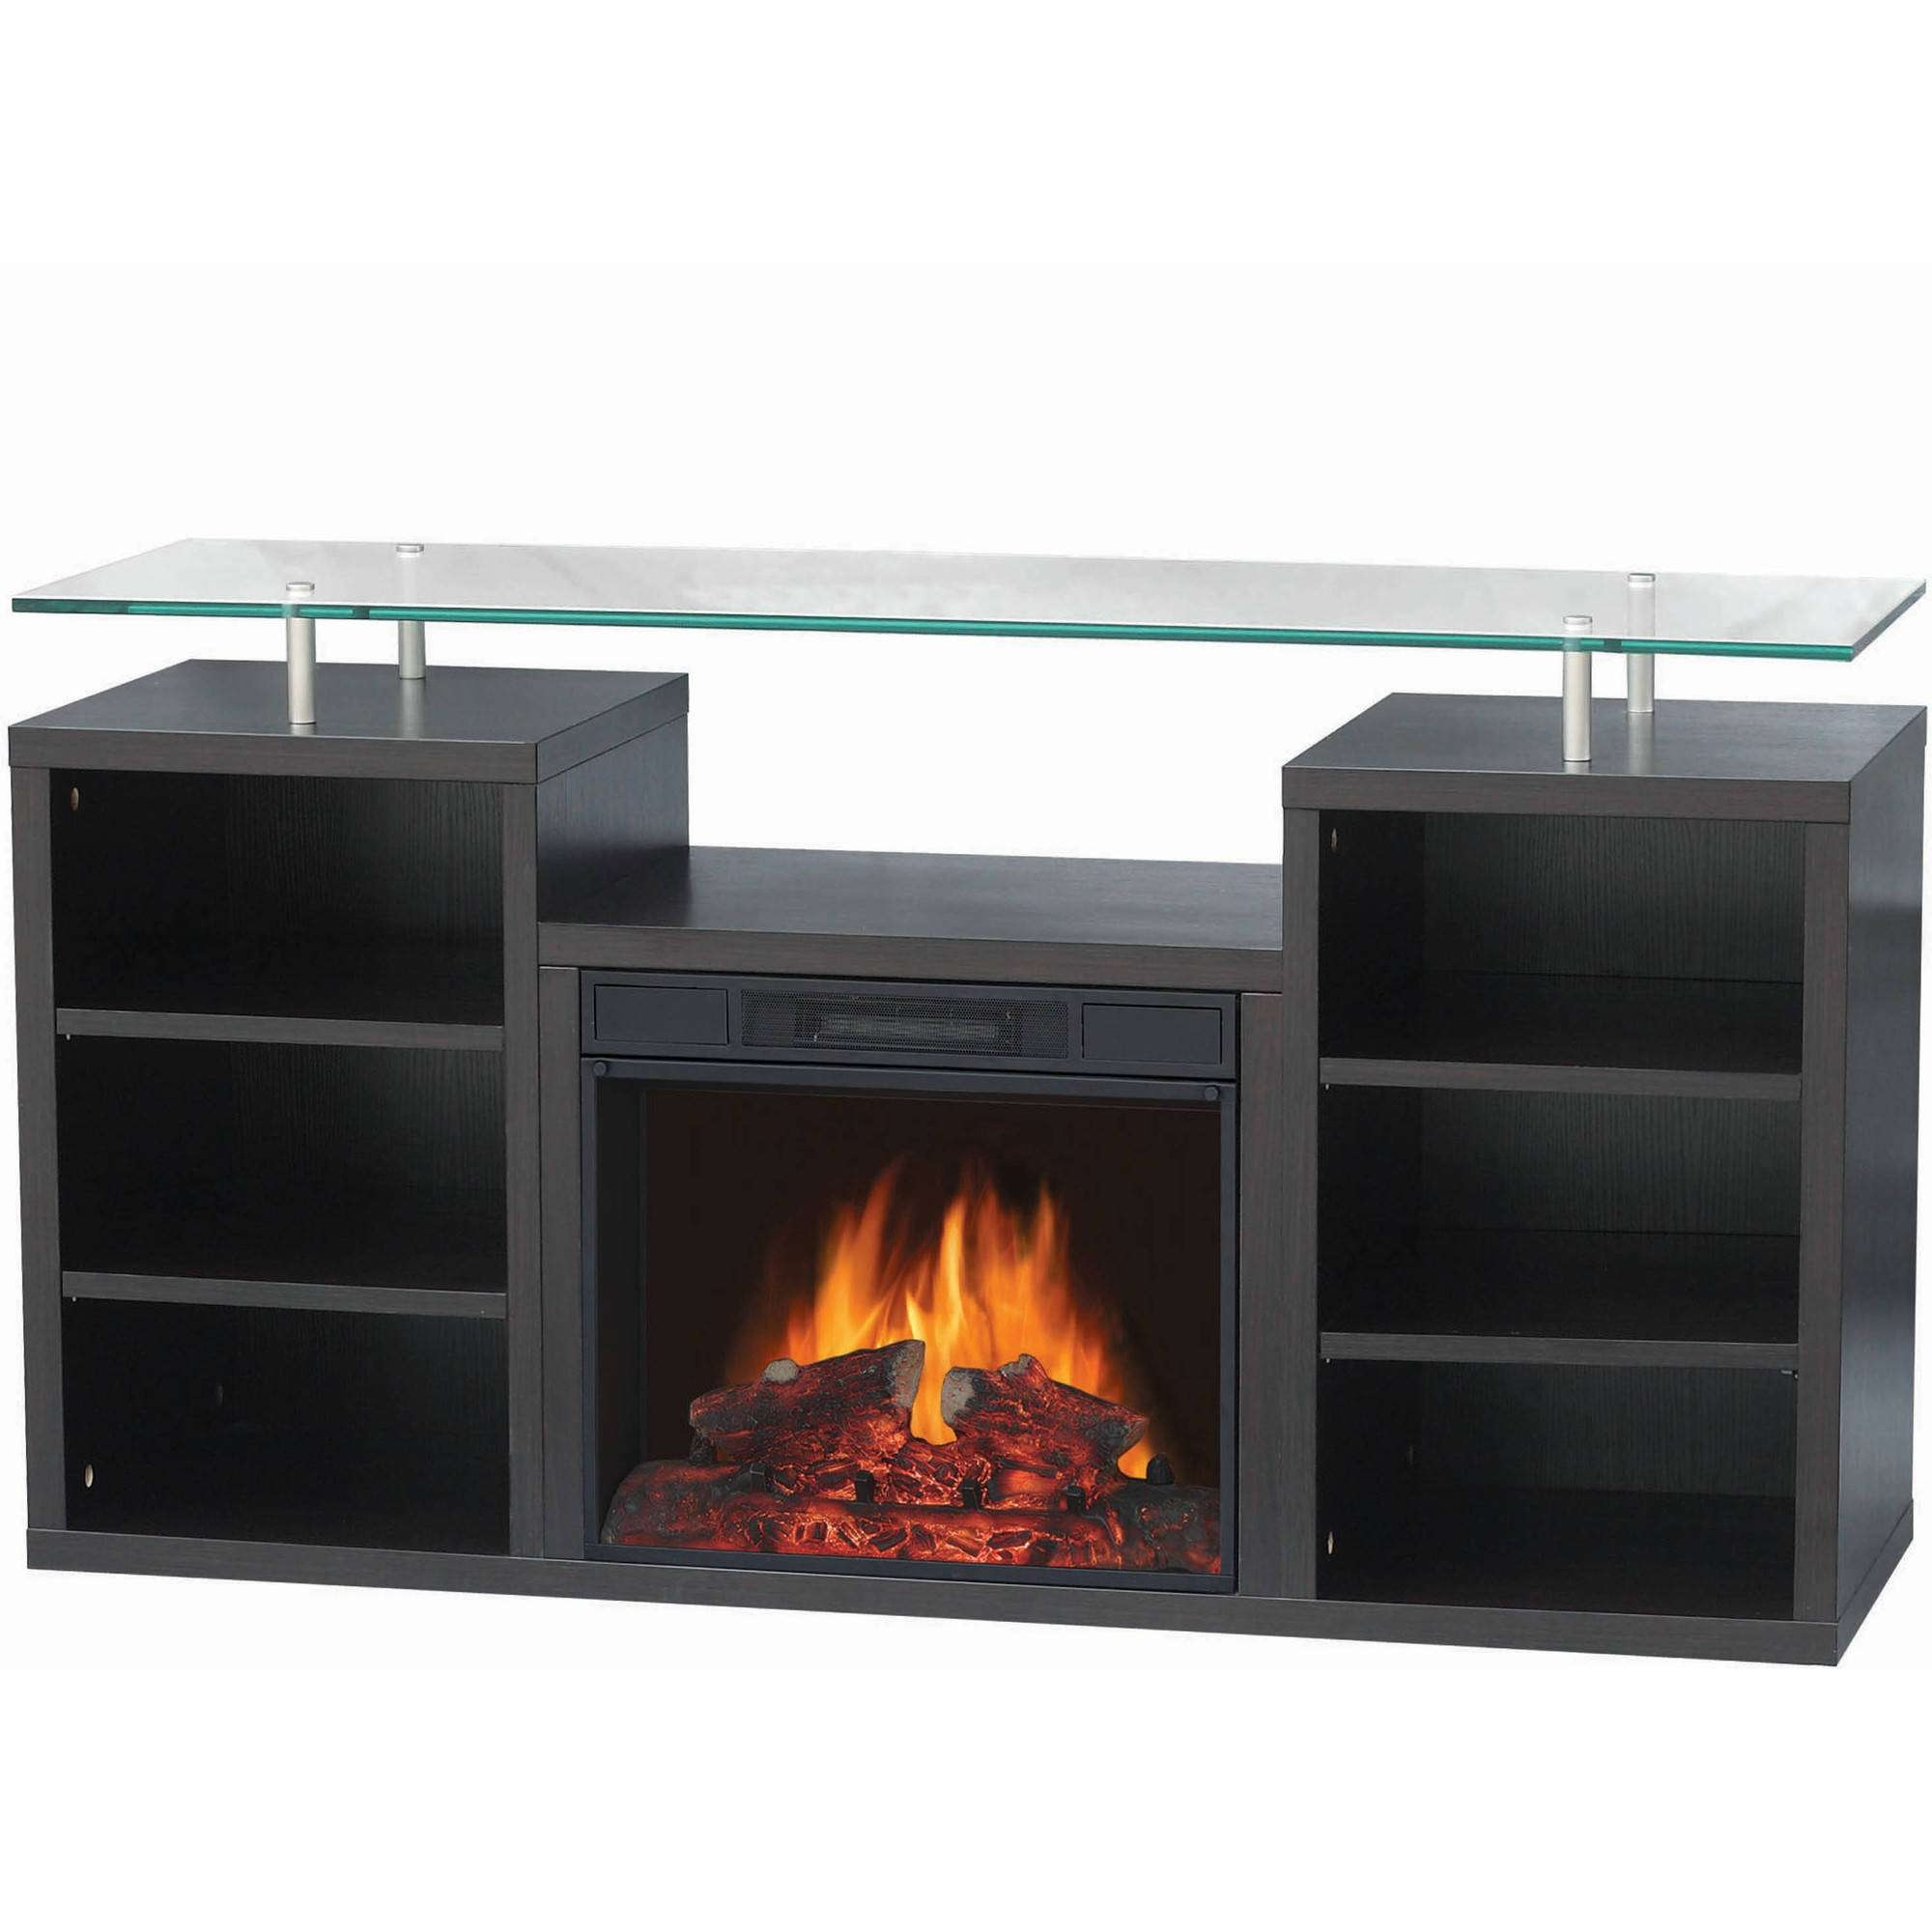 """Décor Flame Denali 50"""" Media Fireplace, For Tvs Up To 55 Inside 50 Inch Fireplace Tv Stands (View 11 of 15)"""